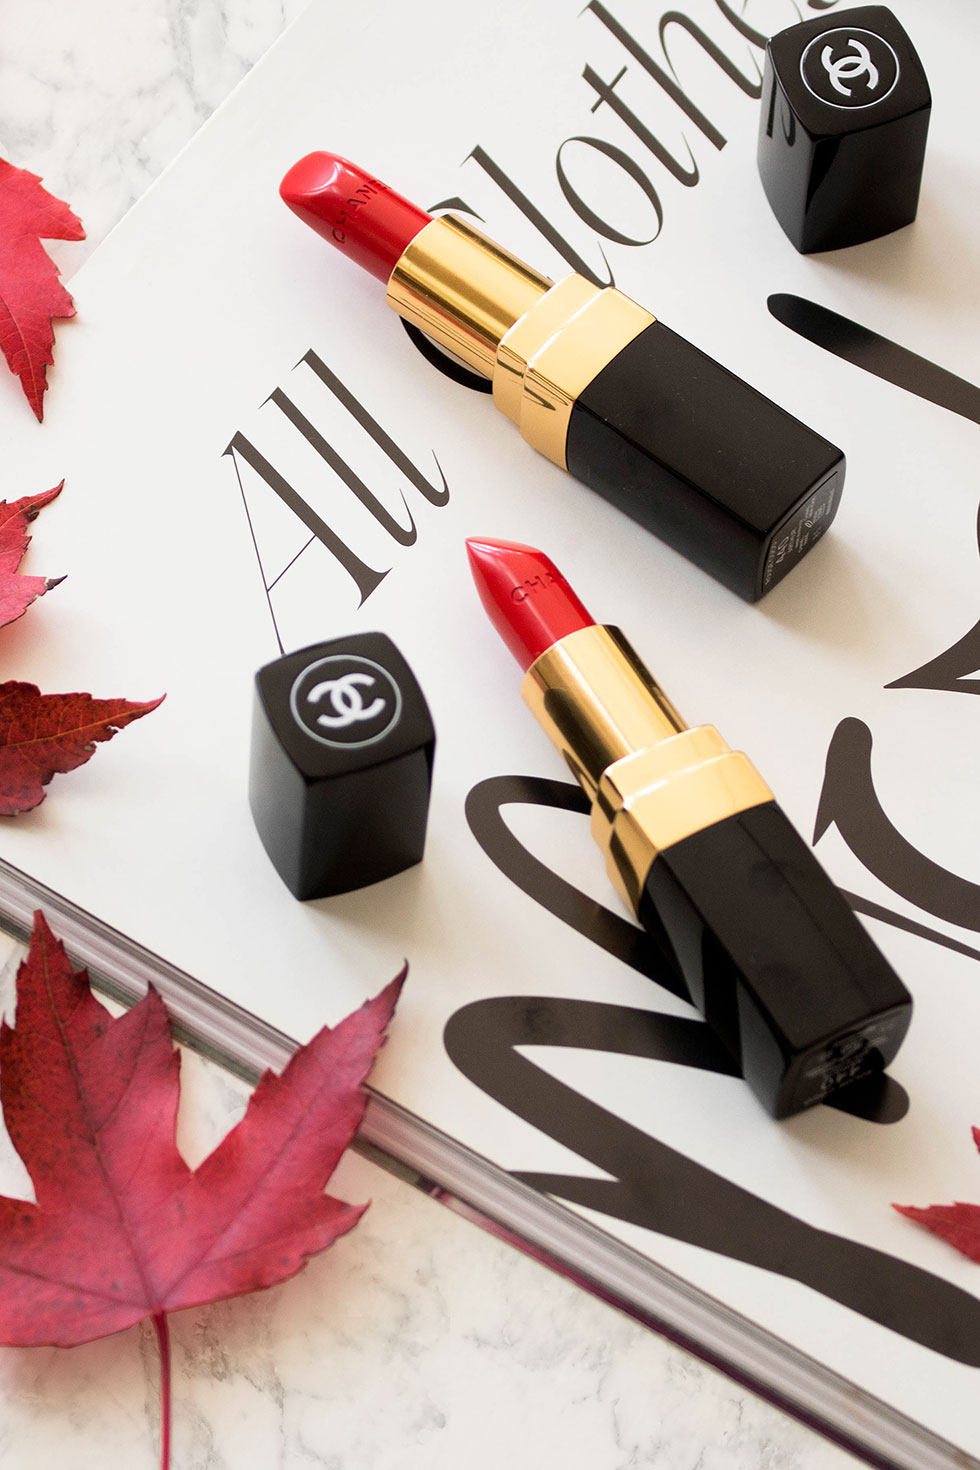 CHANEL ROUGE COCO Ultra Hydrating Lip Colour Red Lipstick